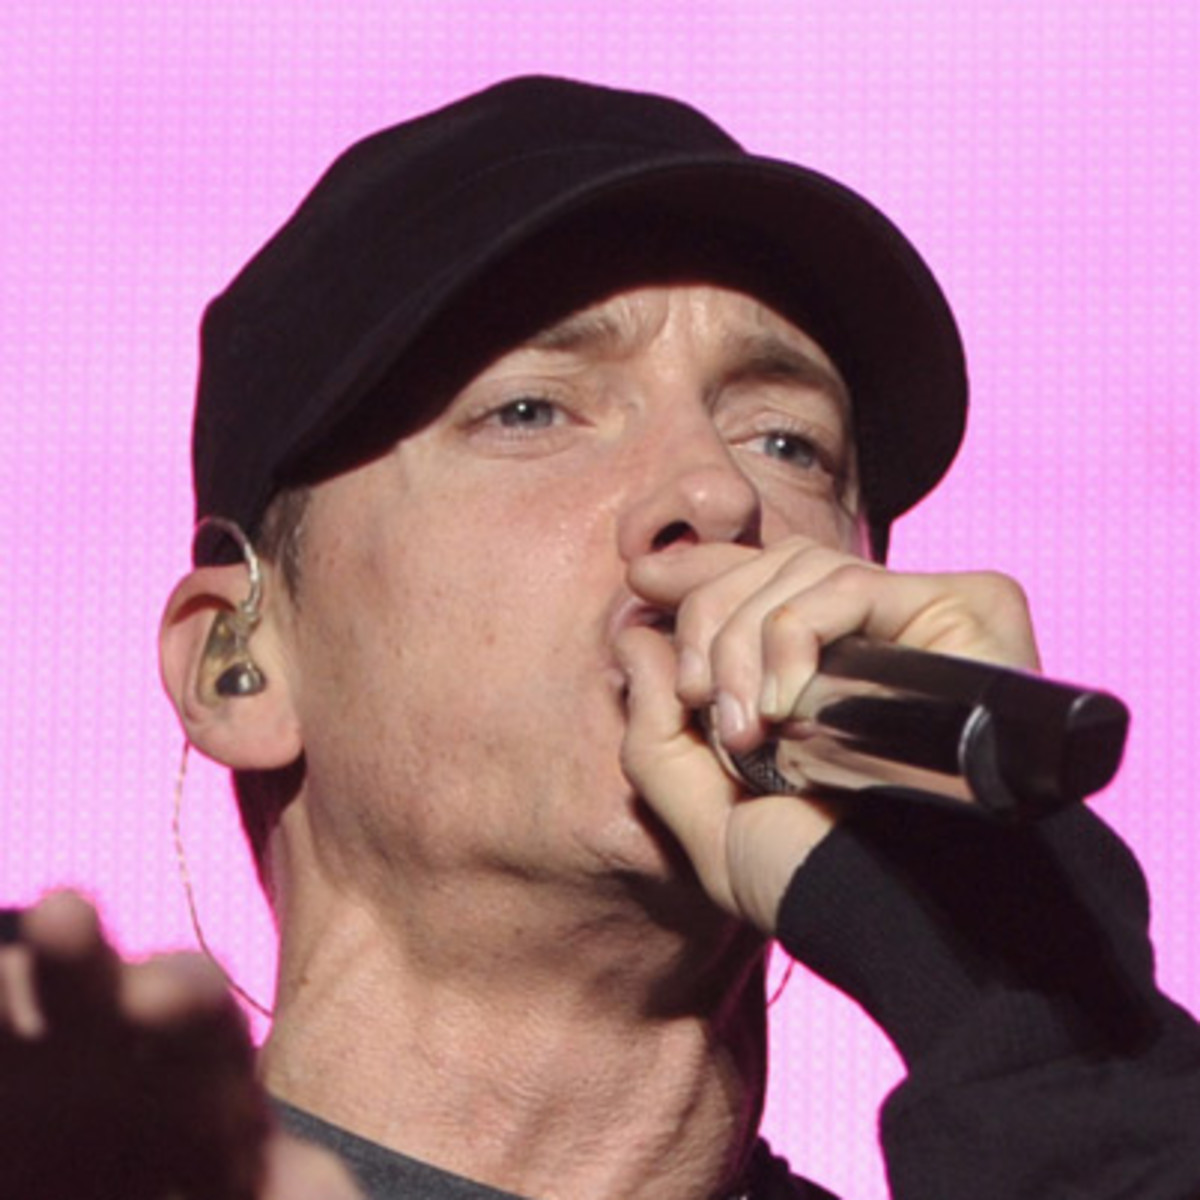 biography of eminem Read biography of eminem: the life and times of eminem, in one convenient little book by jack westerfil with rakuten kobo when marshall mathers, better known as eminem, made his album debut with the slim shady lp in the spring of 1999, he evo.